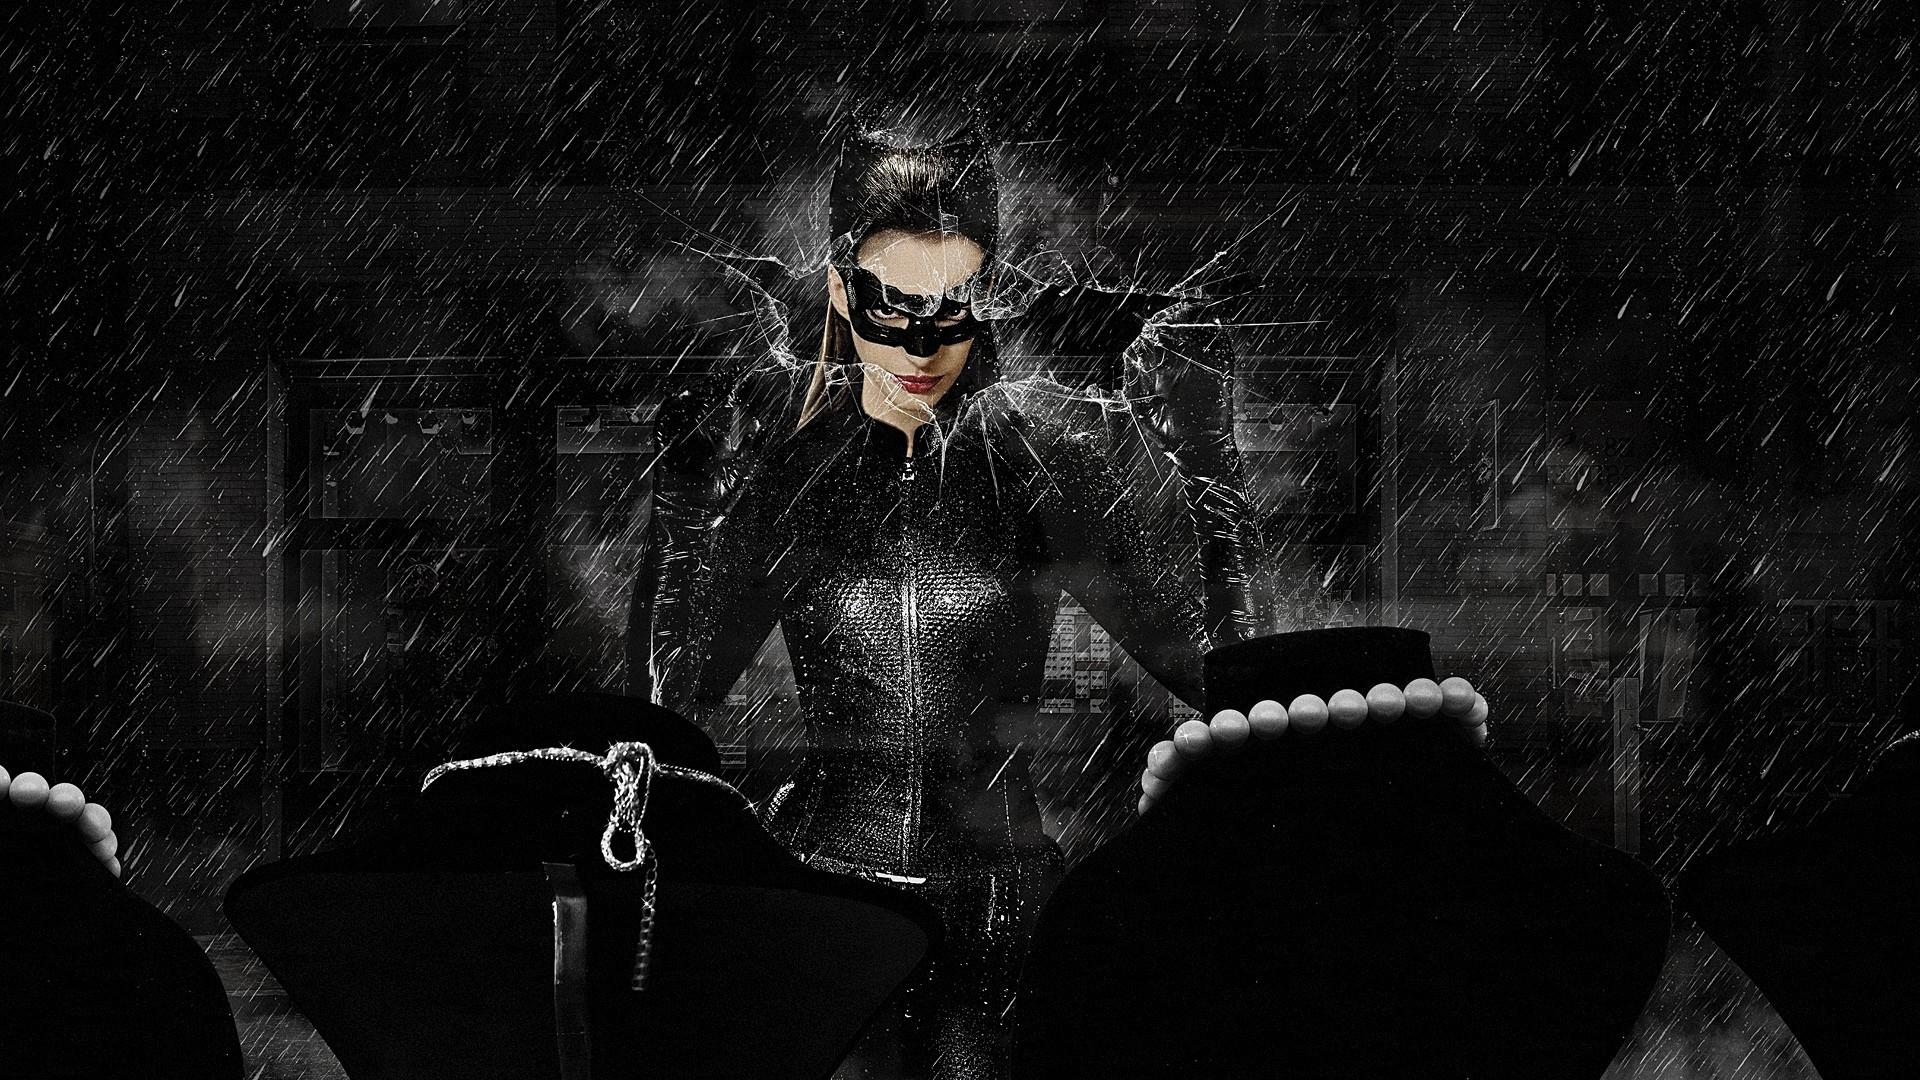 Anne Hathaway   Catwoman Wallpaper   2 1920x1080